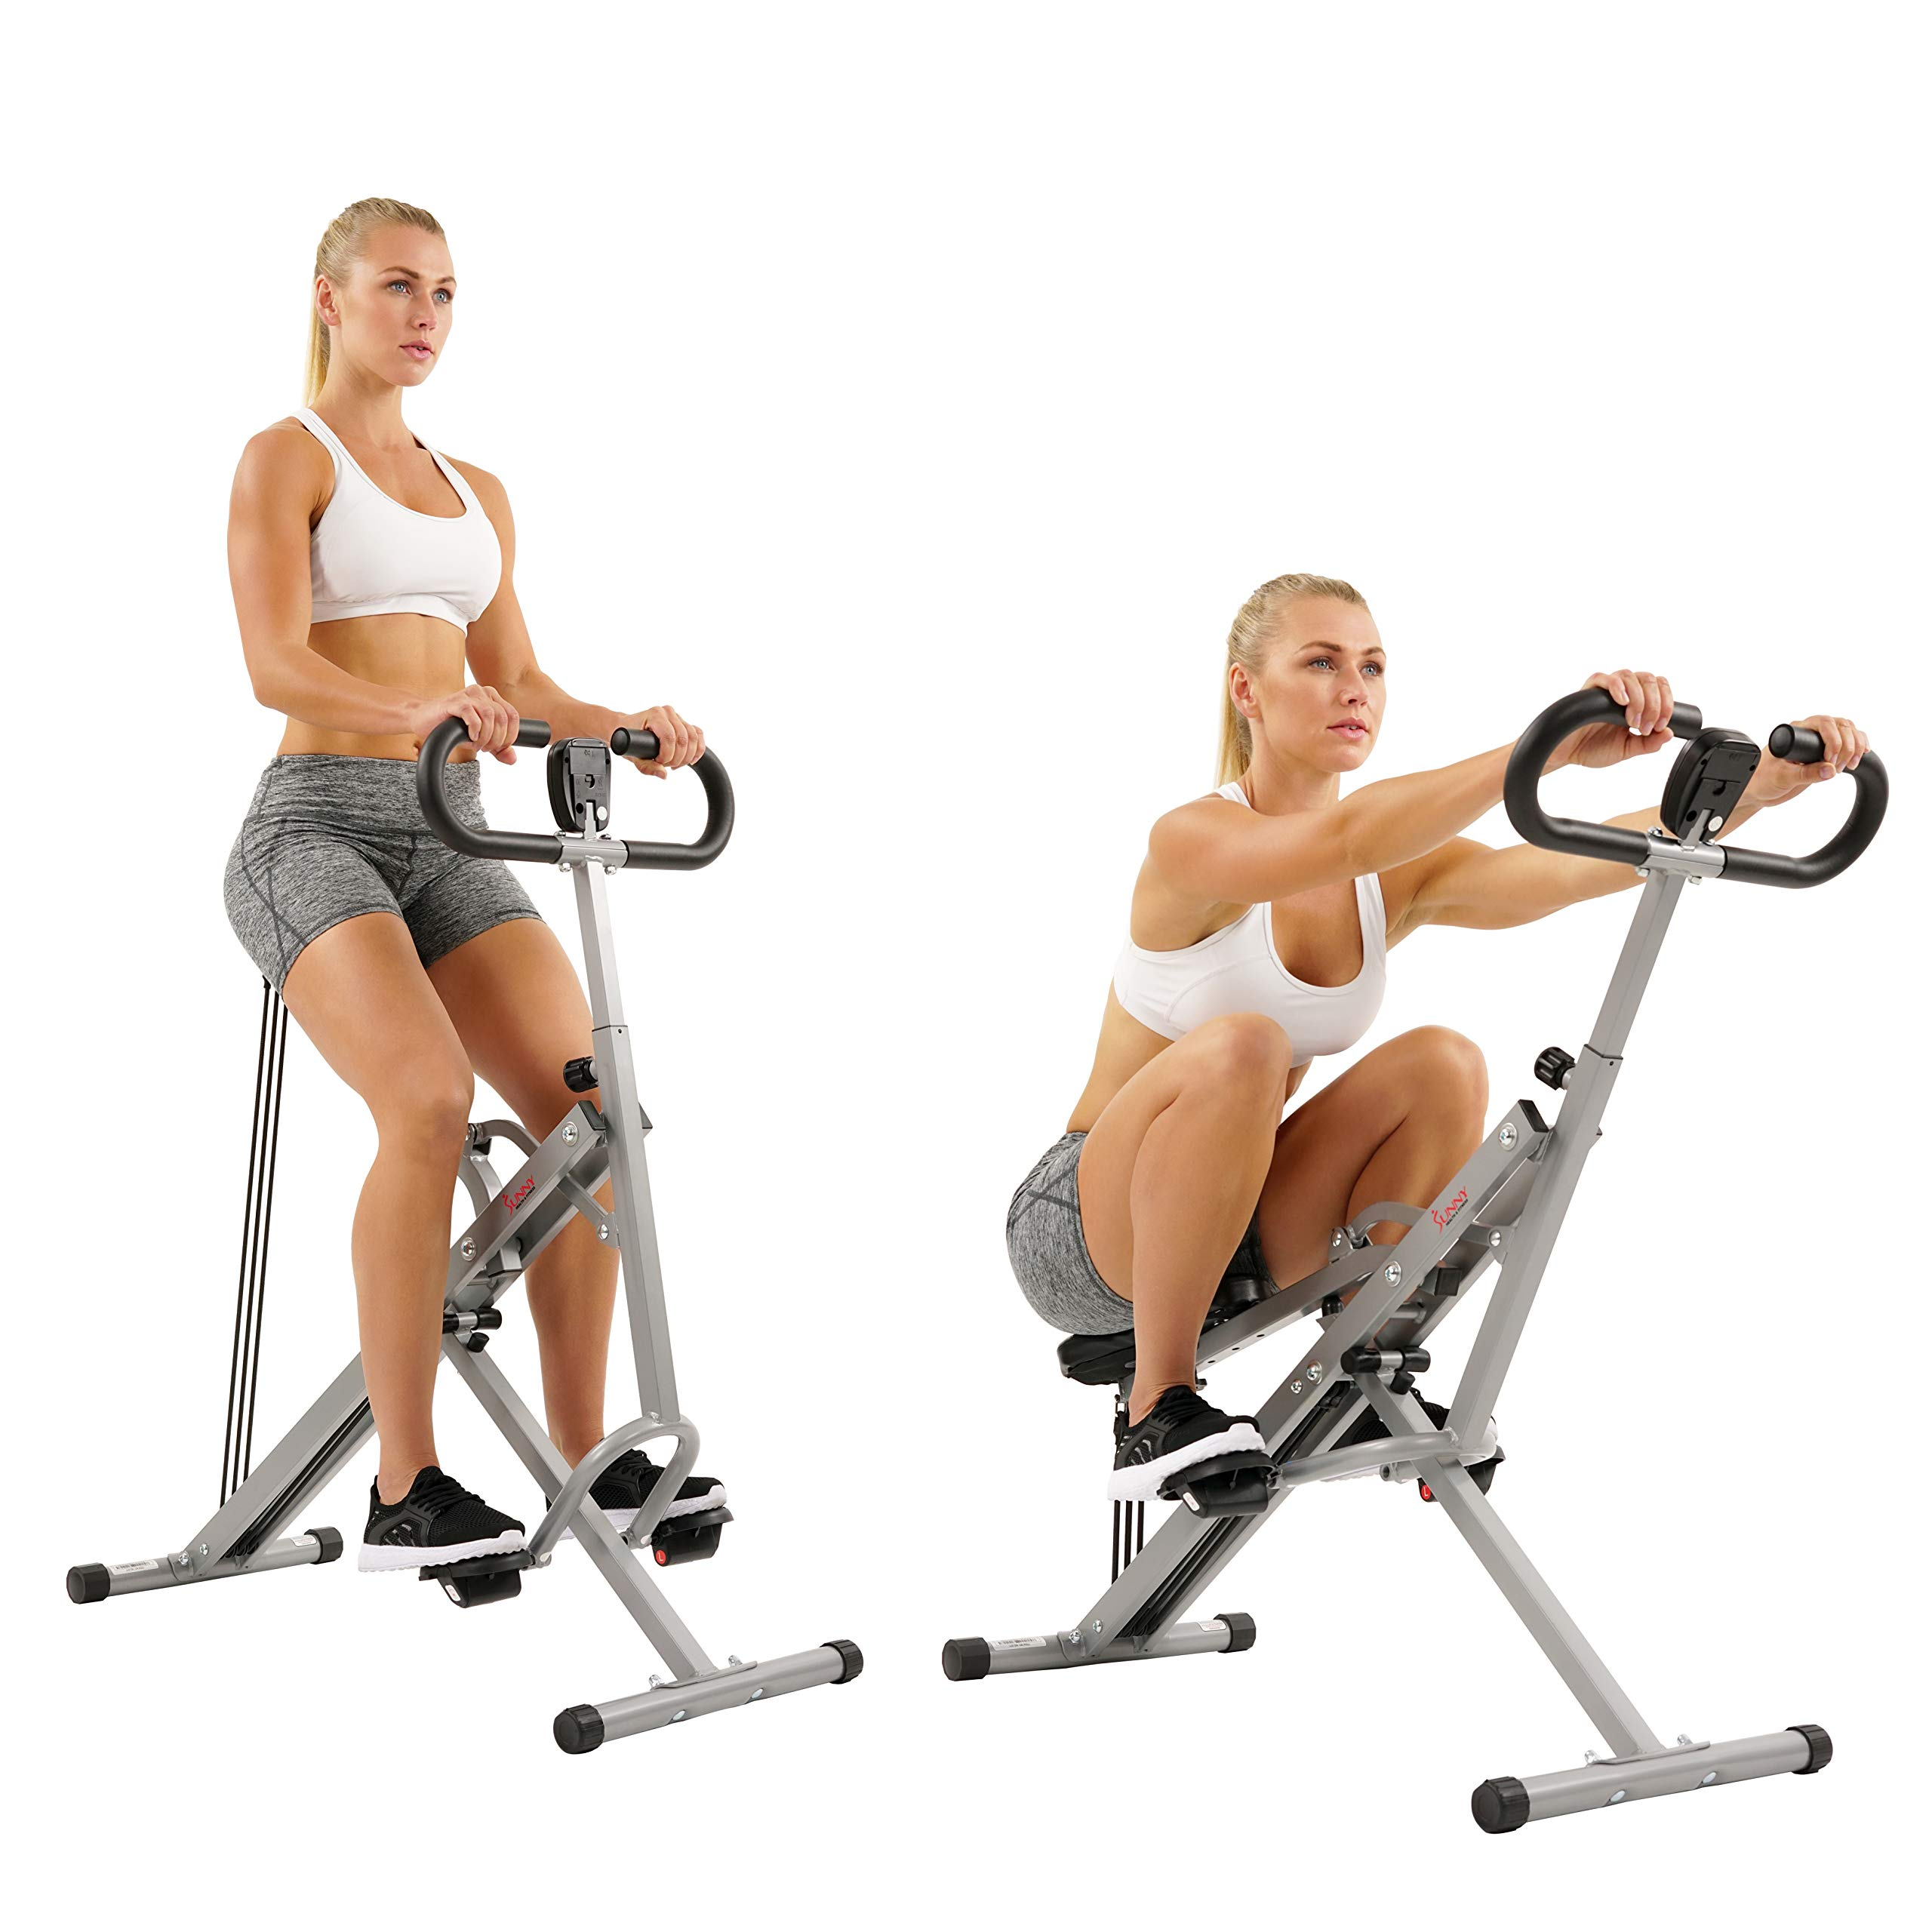 Sunny Health & Fitness Squat Assist Row-N-Ride Trainer for Squat Exercise and Glutes Workout by Sunny Health & Fitness (Image #9)